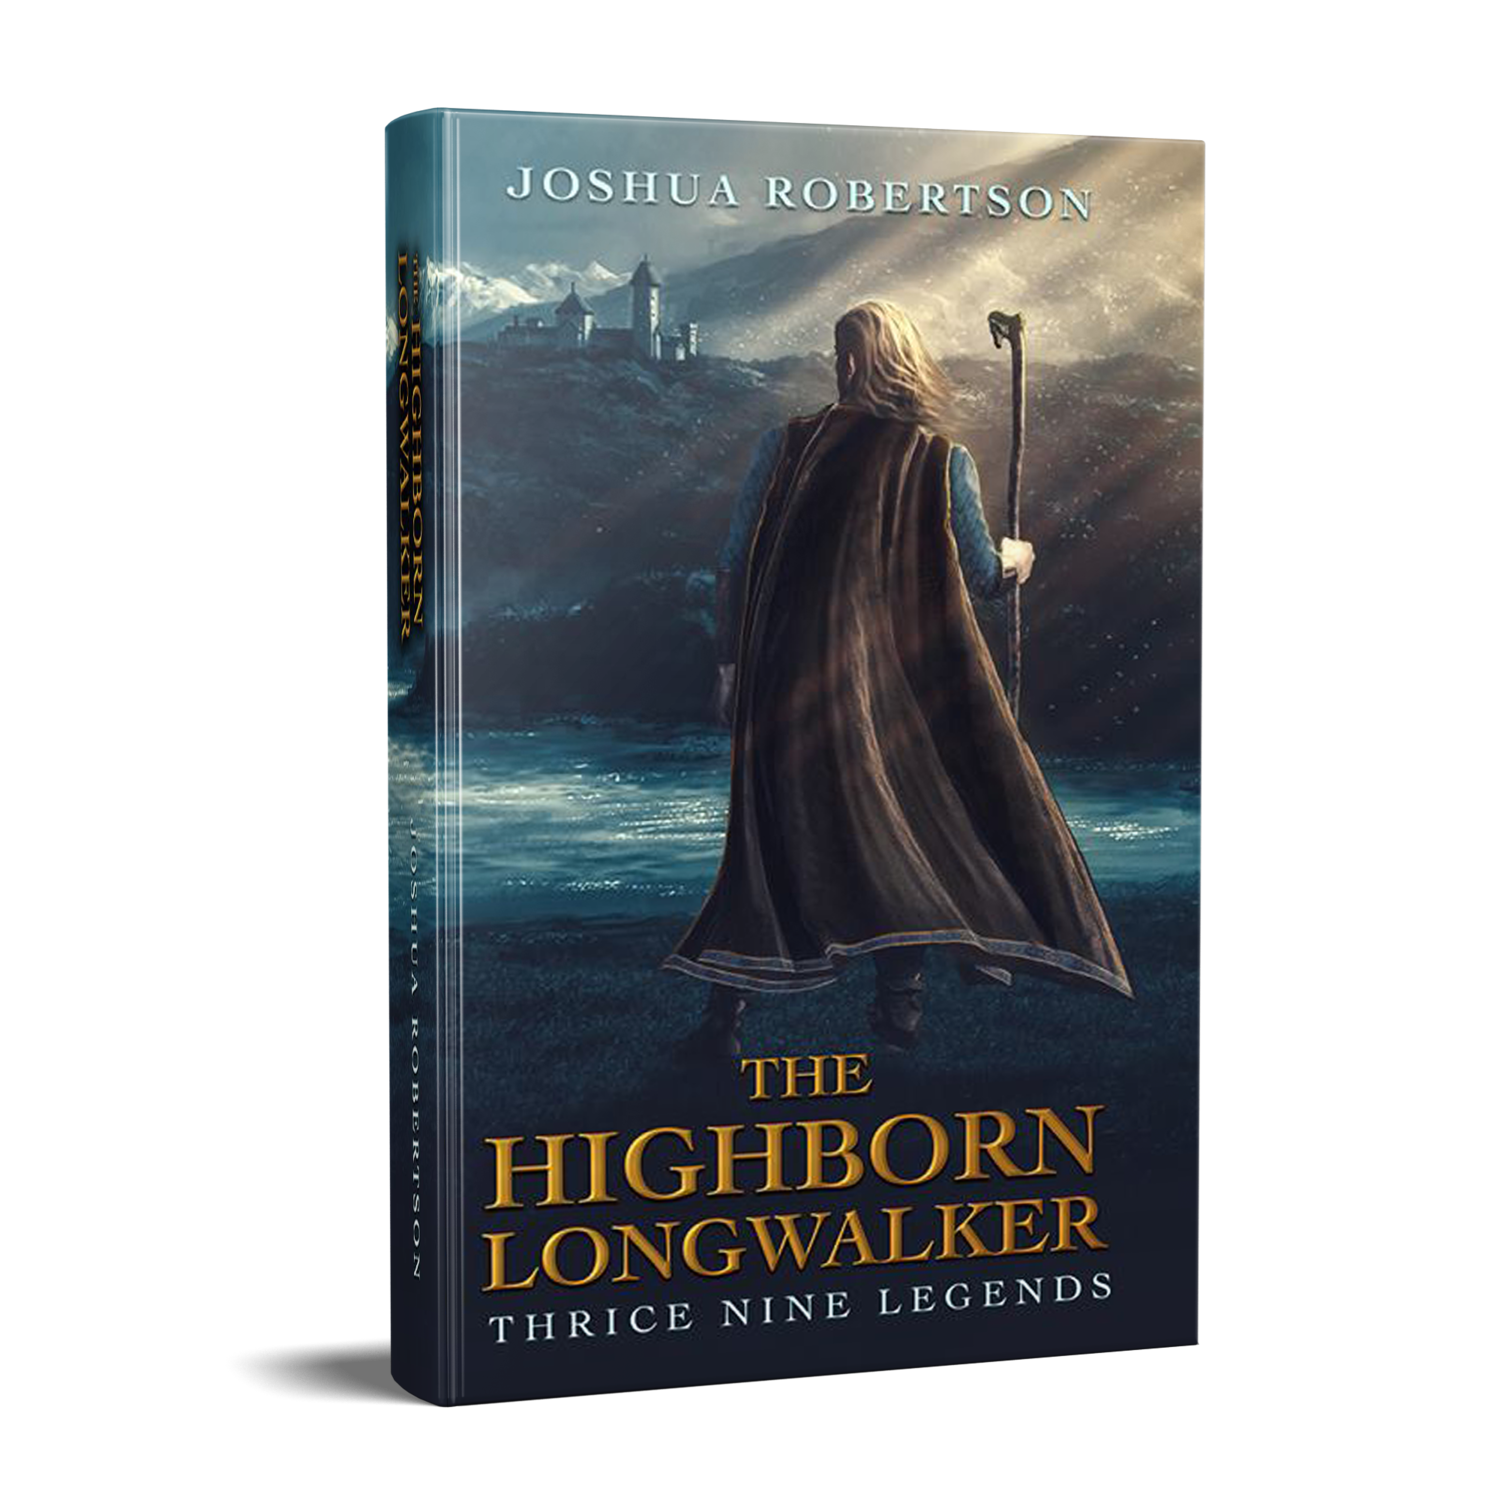 The Highborn Longwalker - Paperback